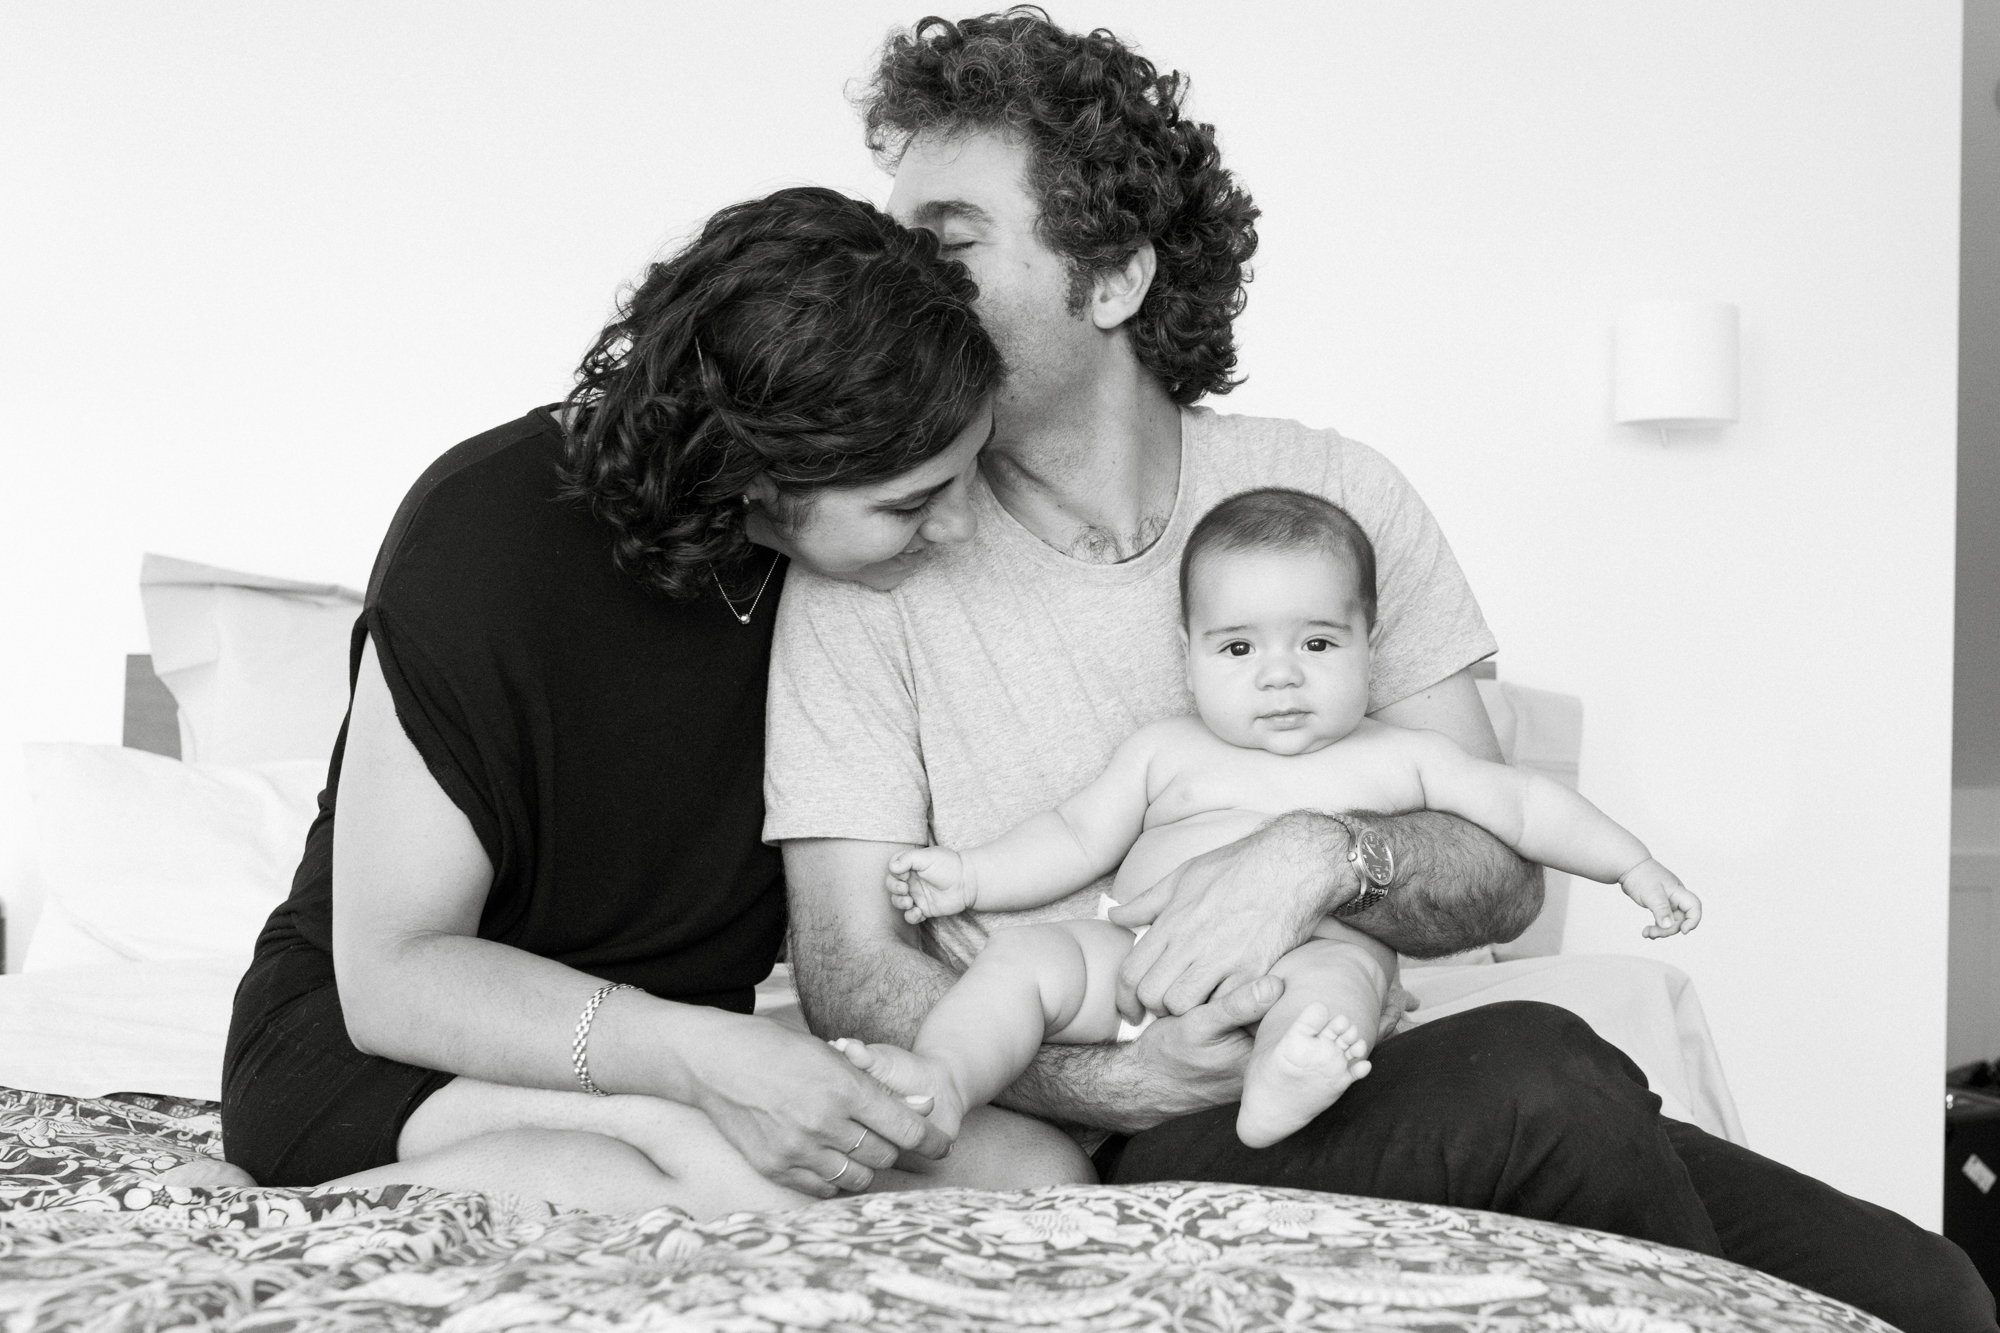 Family portrait photographer, Hackney, London London Children Photography